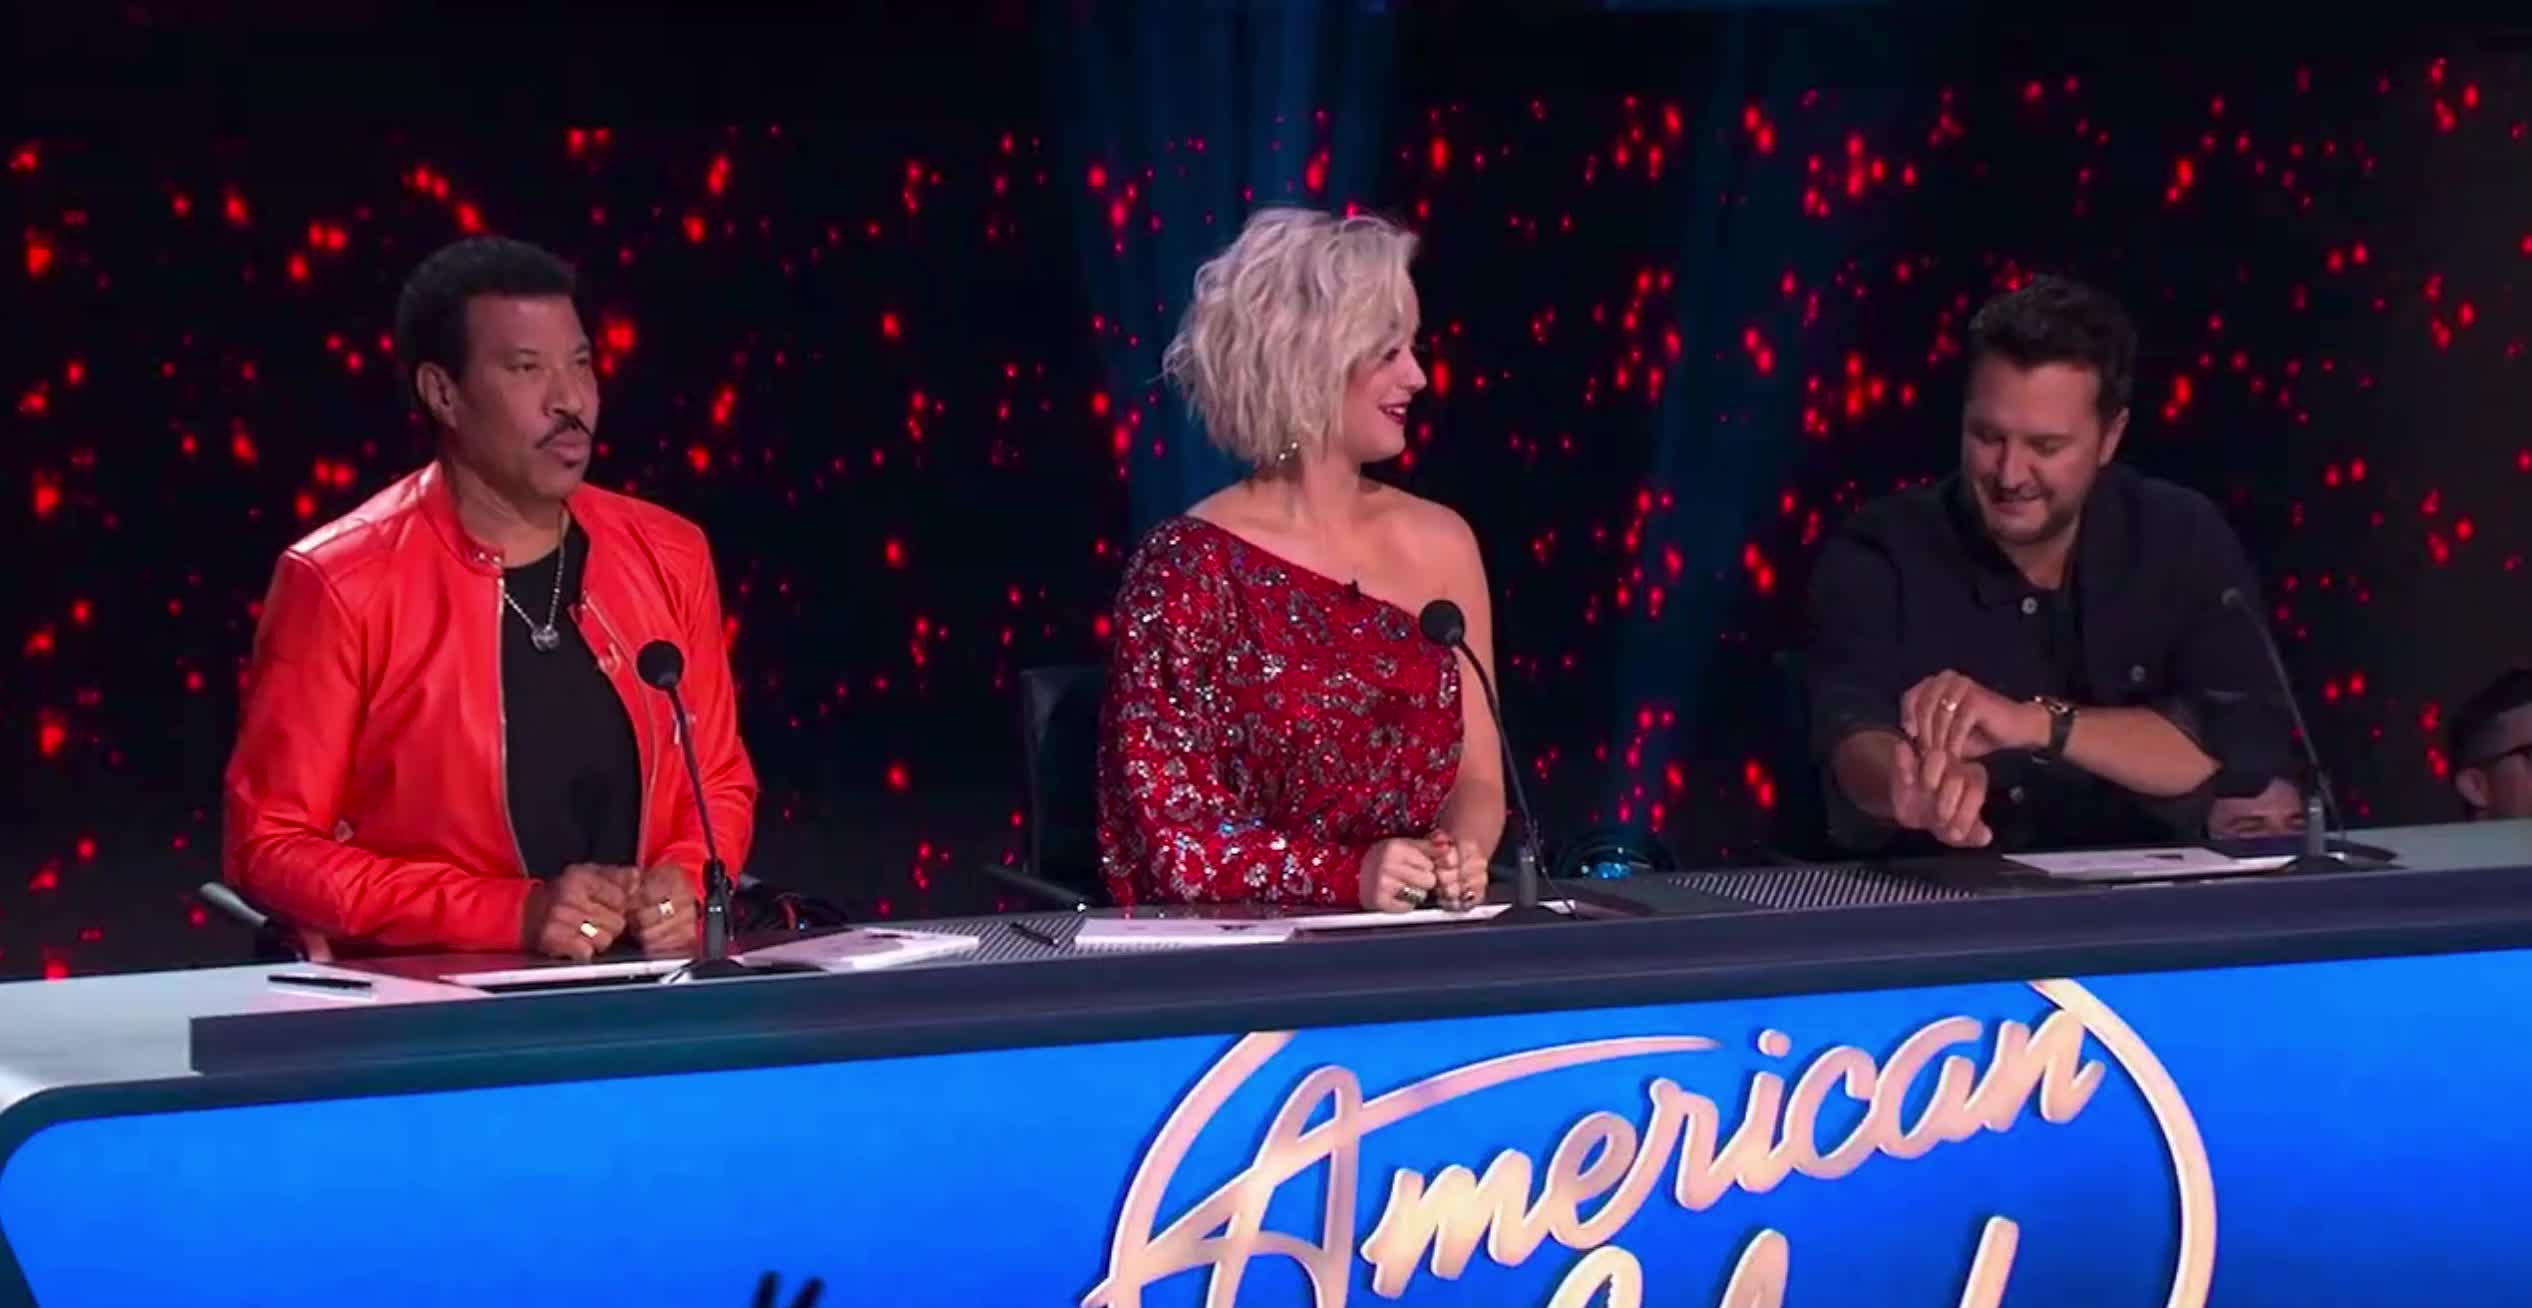 american idol, american idol season 17, americanidol, katy perry, lionel richie, luke bryan, nervous, ryan seacrest, season 17, American Idol Judges Nervous Goosebumps GIFs